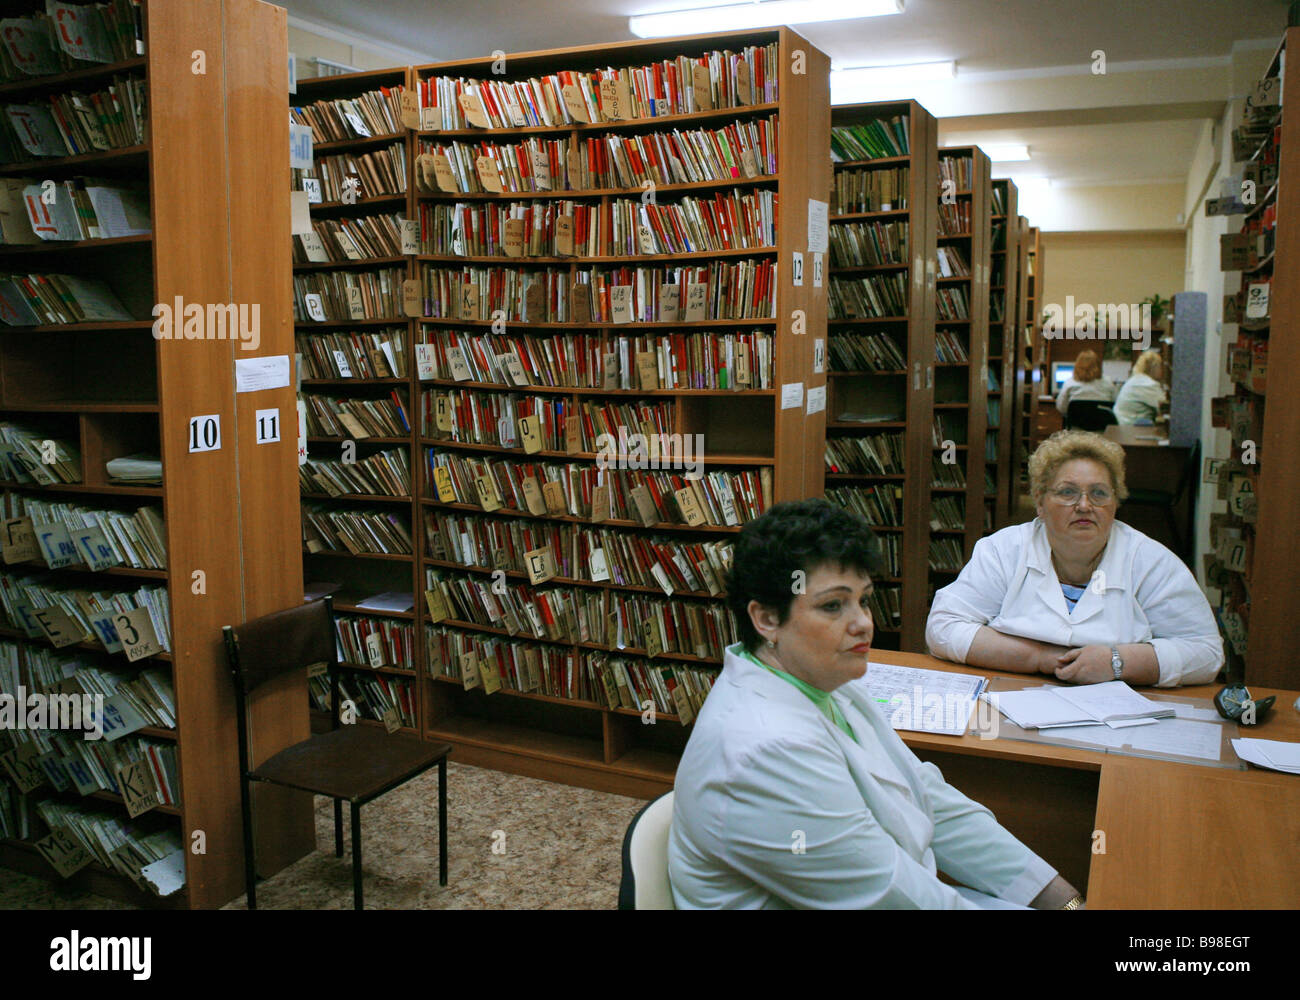 À la réception de l'hôpital de district de Rozanov, professeur d'un centre de prévention Photo Stock